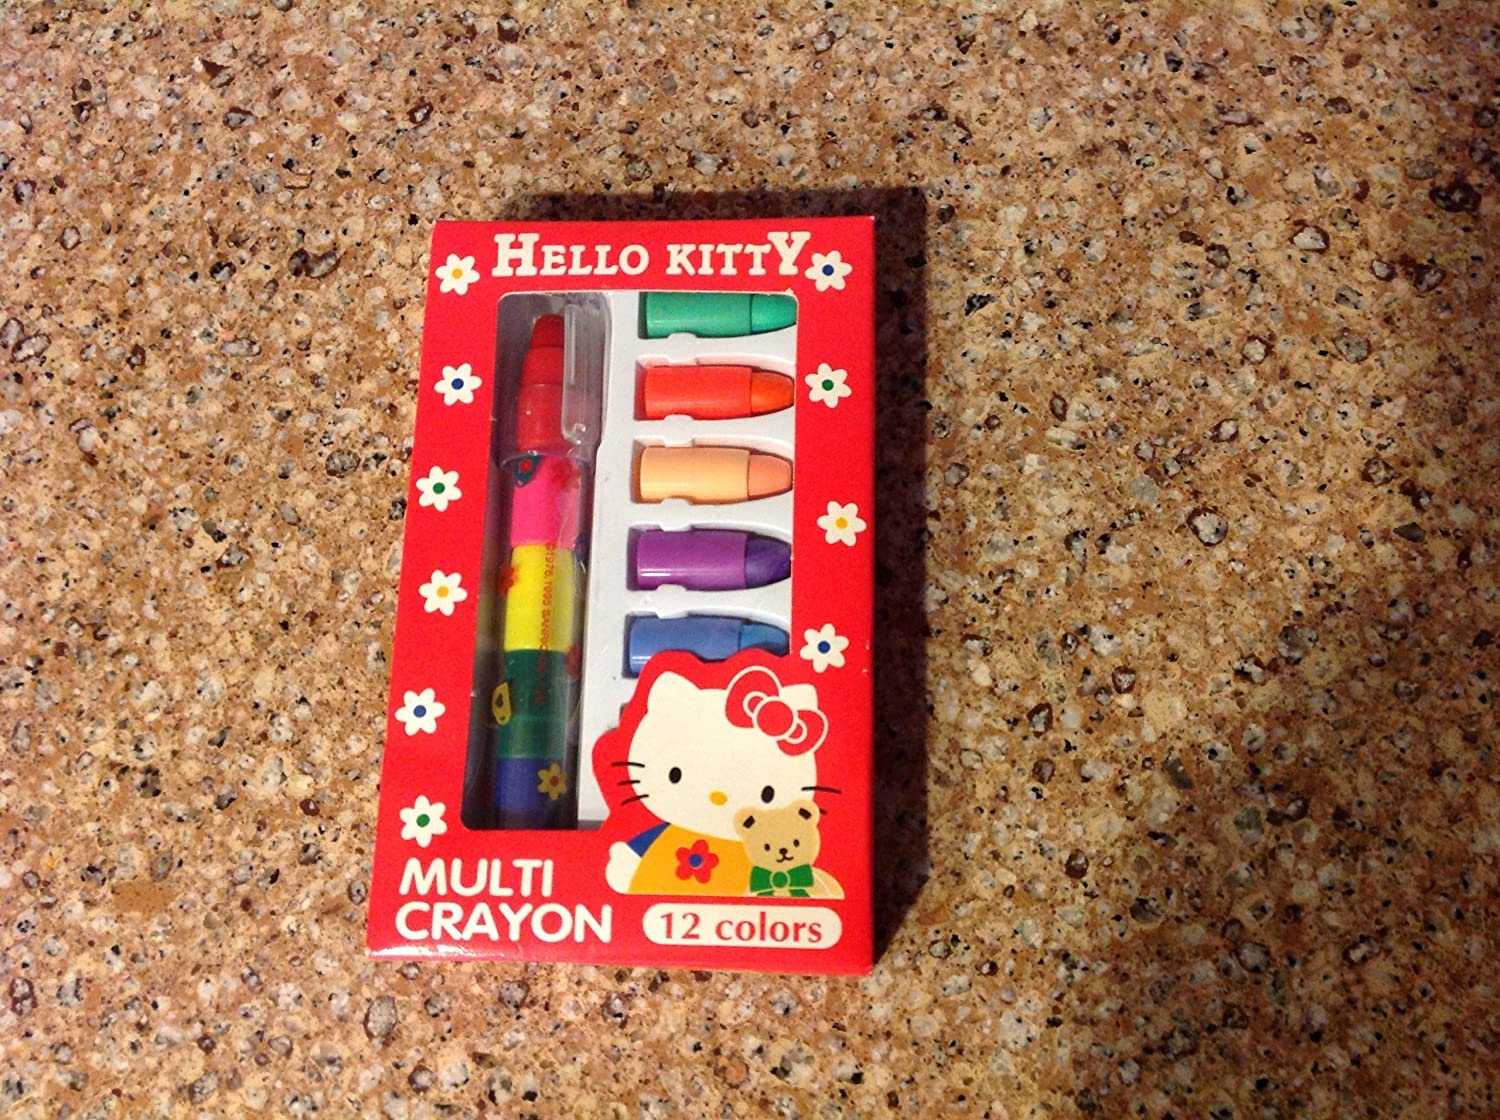 Hello Kitty Multi-Crayon Set! 12 Colors! Not Sold in Stores!